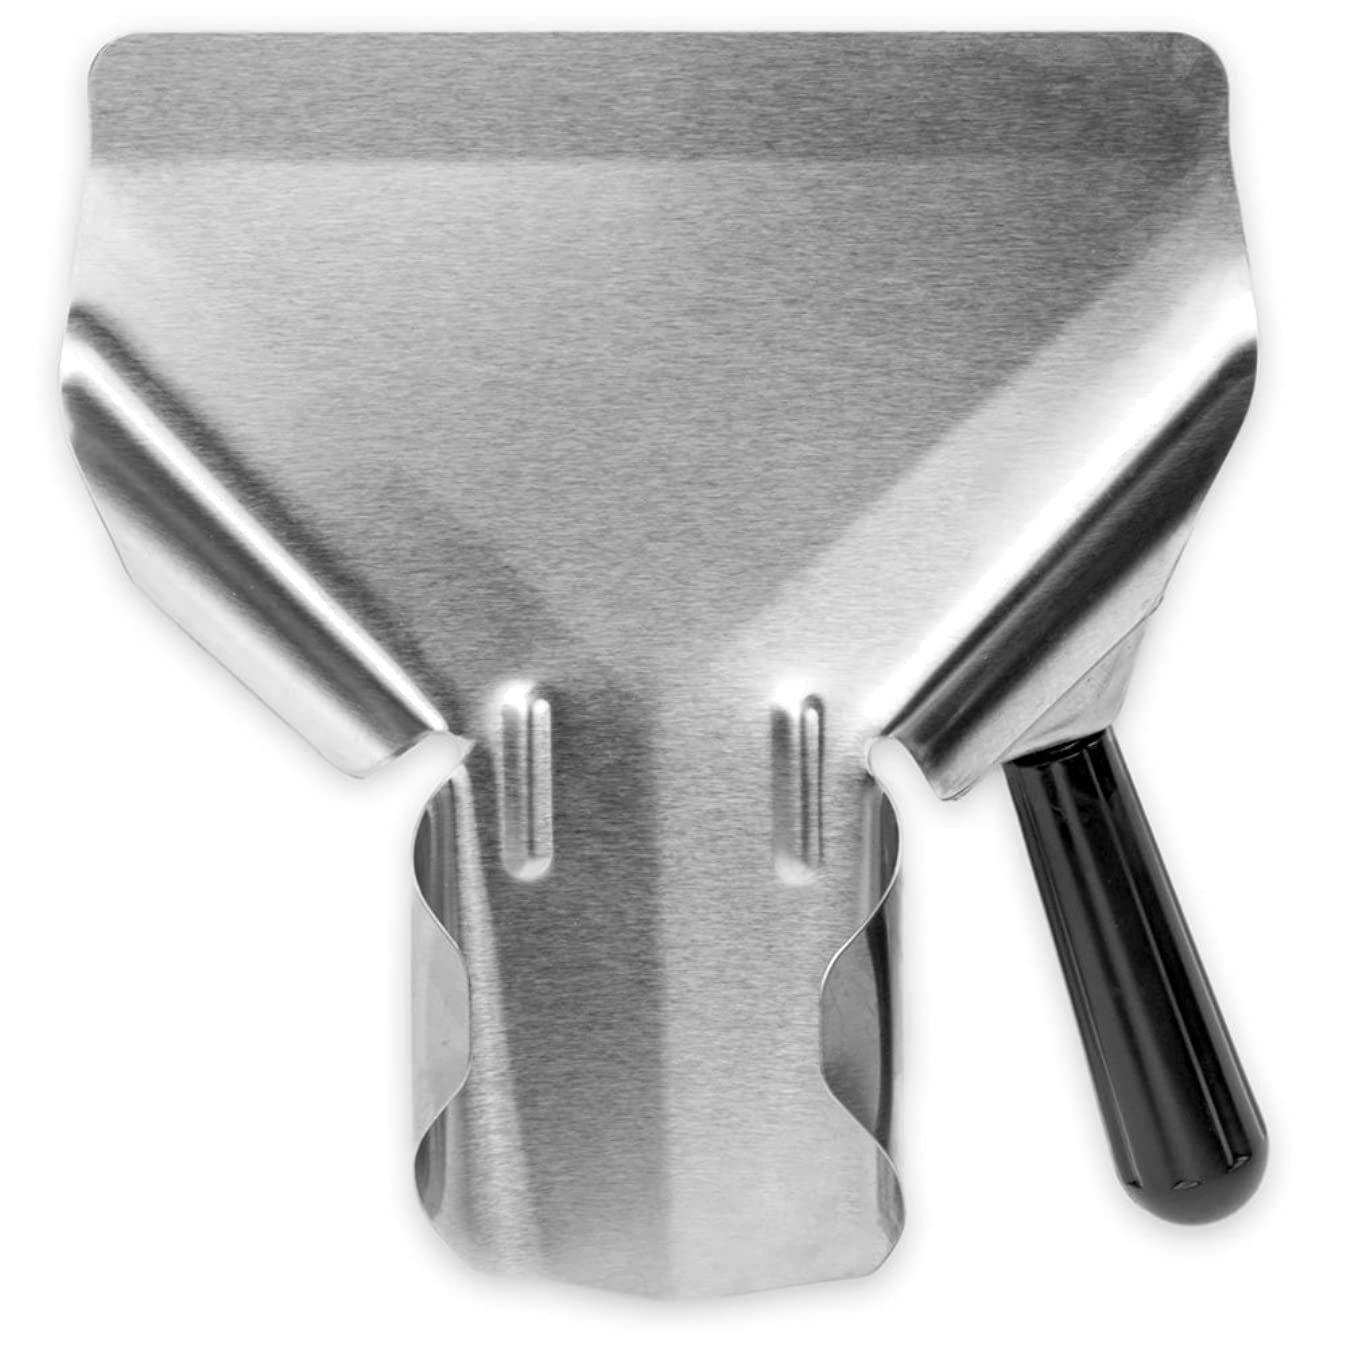 Stainless Steel Popcorn Scoop – Easy Fill Tool for Bags & Boxes, Great Utility Serving Scooper for Snacks, Desserts, Ice, & Dry Goods by Back of House Ltd.